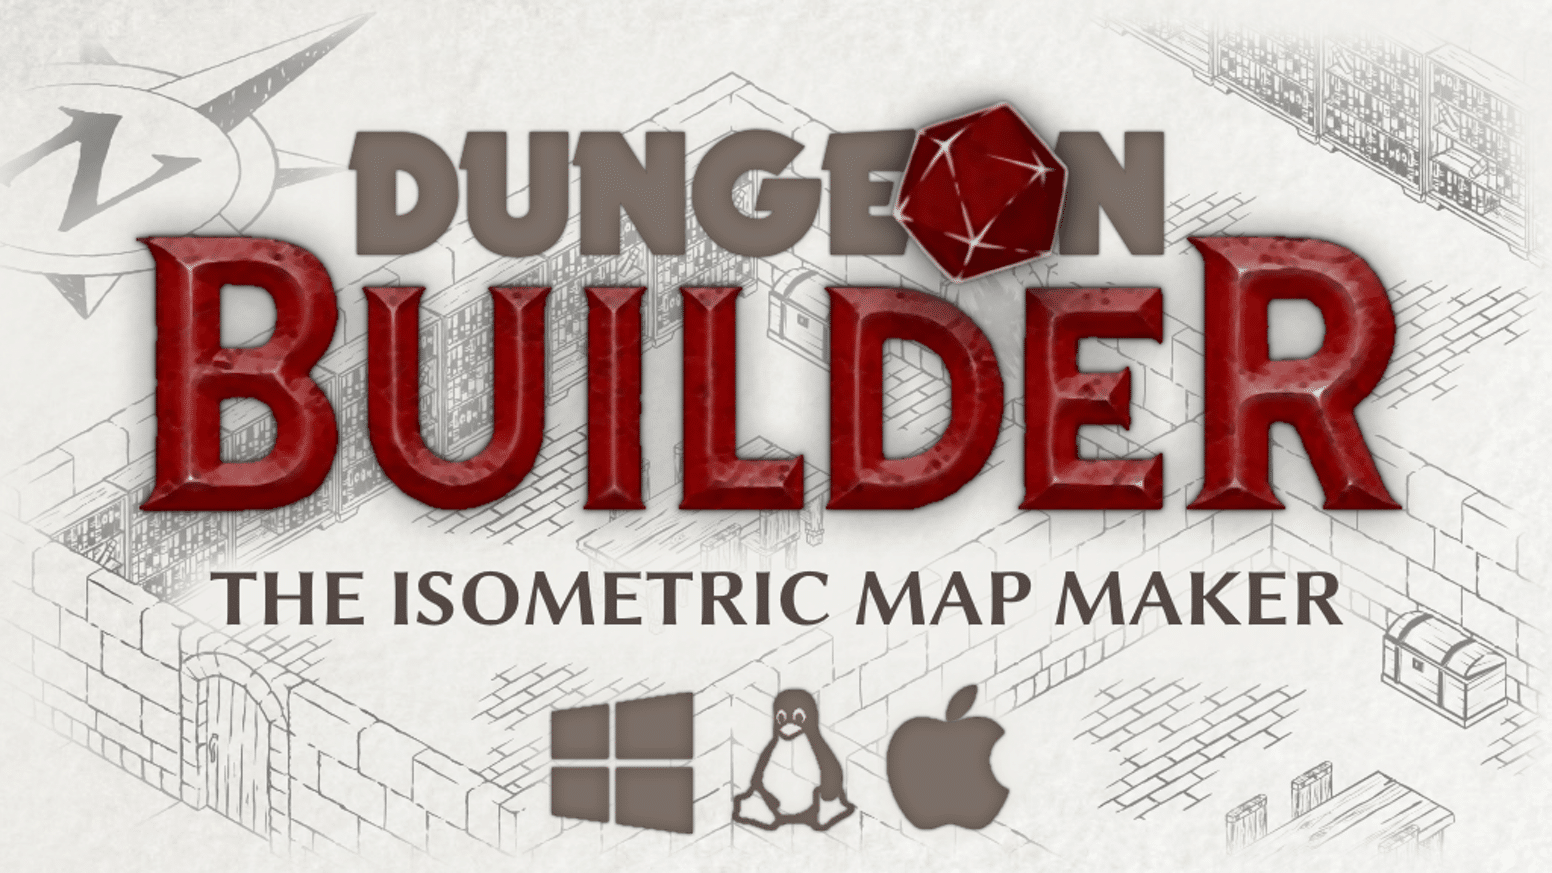 Dungeon Builder – Isometria unica via!